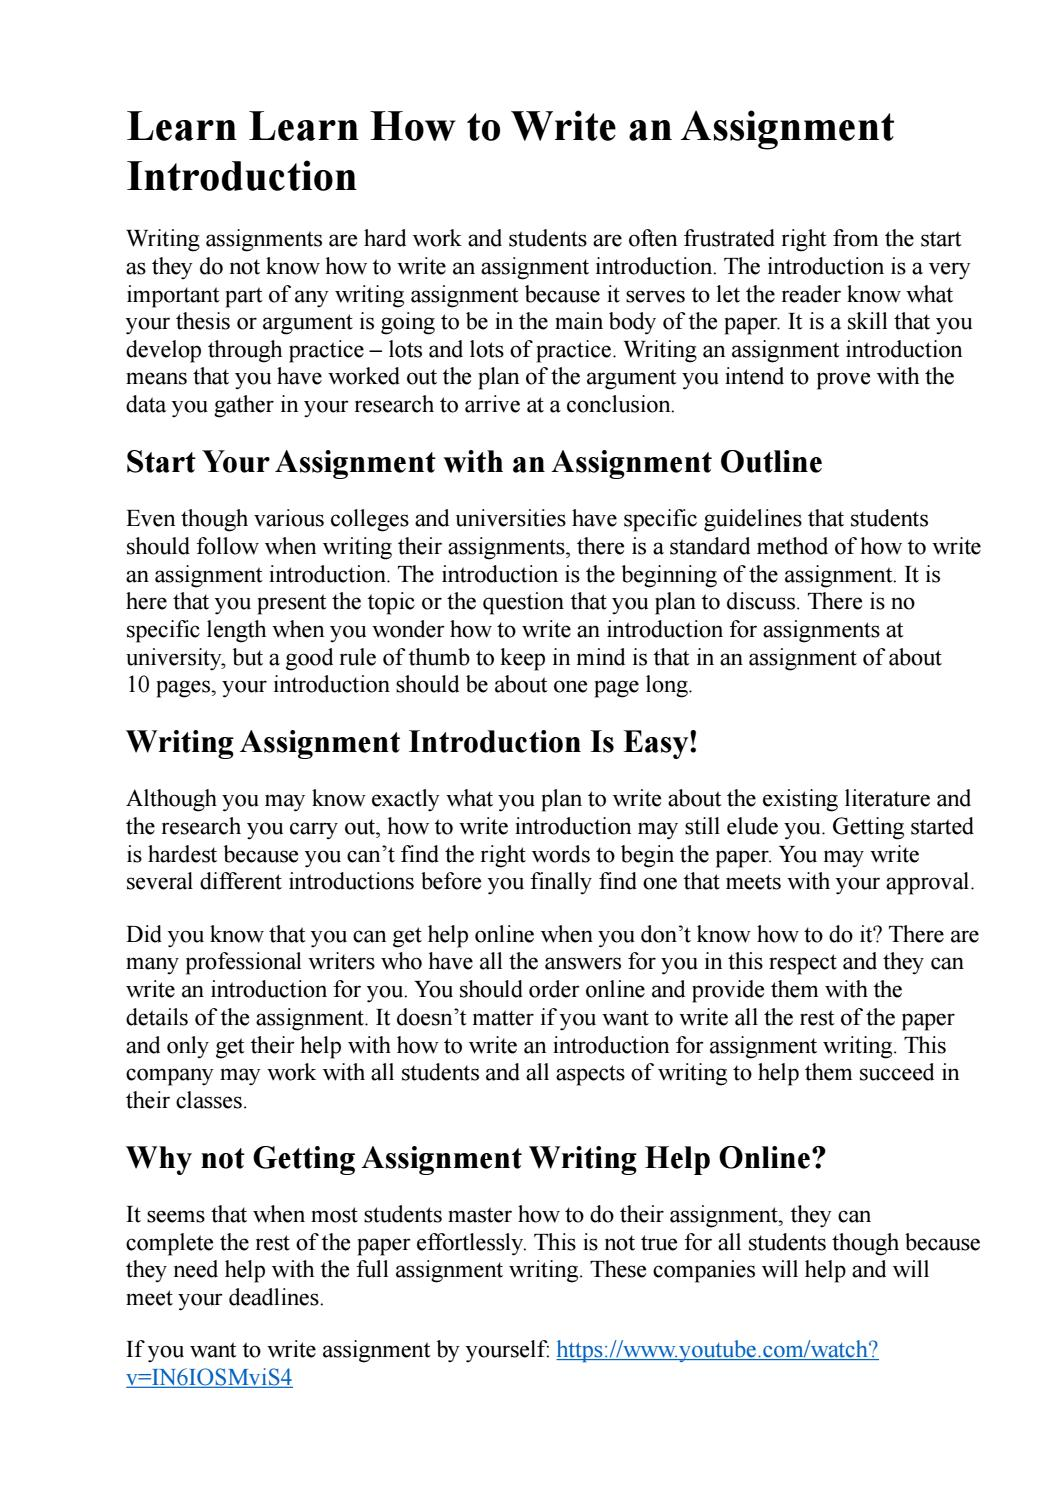 How to write assignment introduction